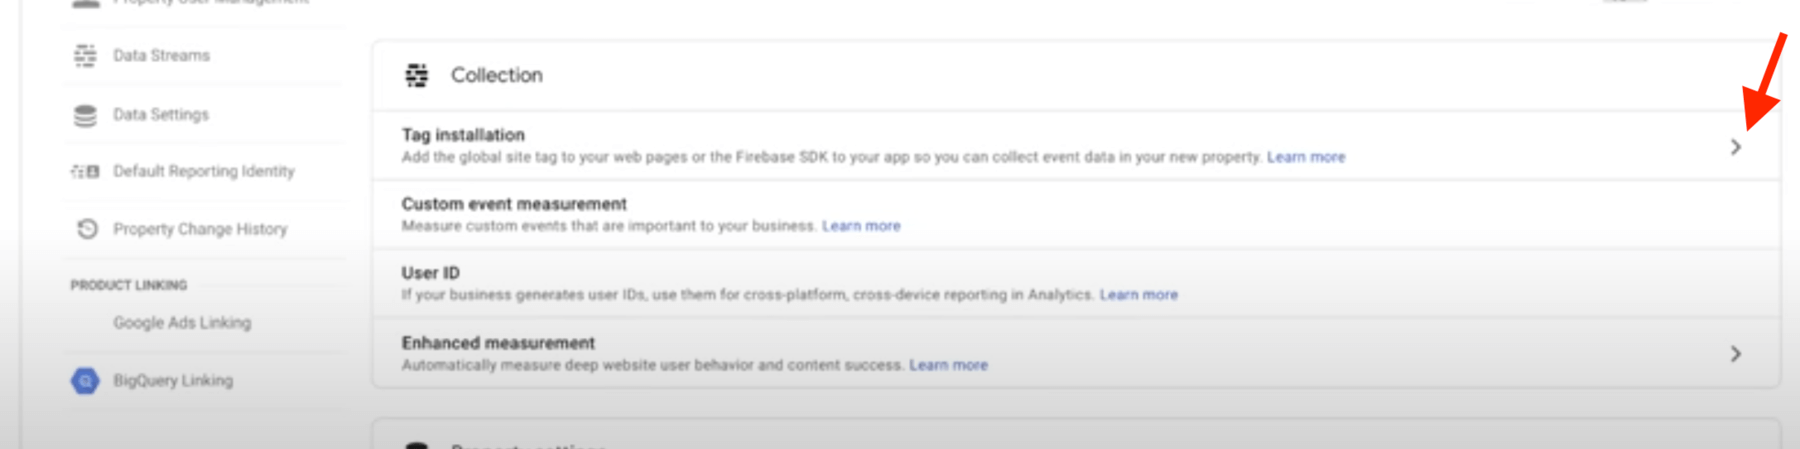 Screenshot of tag installation for Google Analytics 4.0